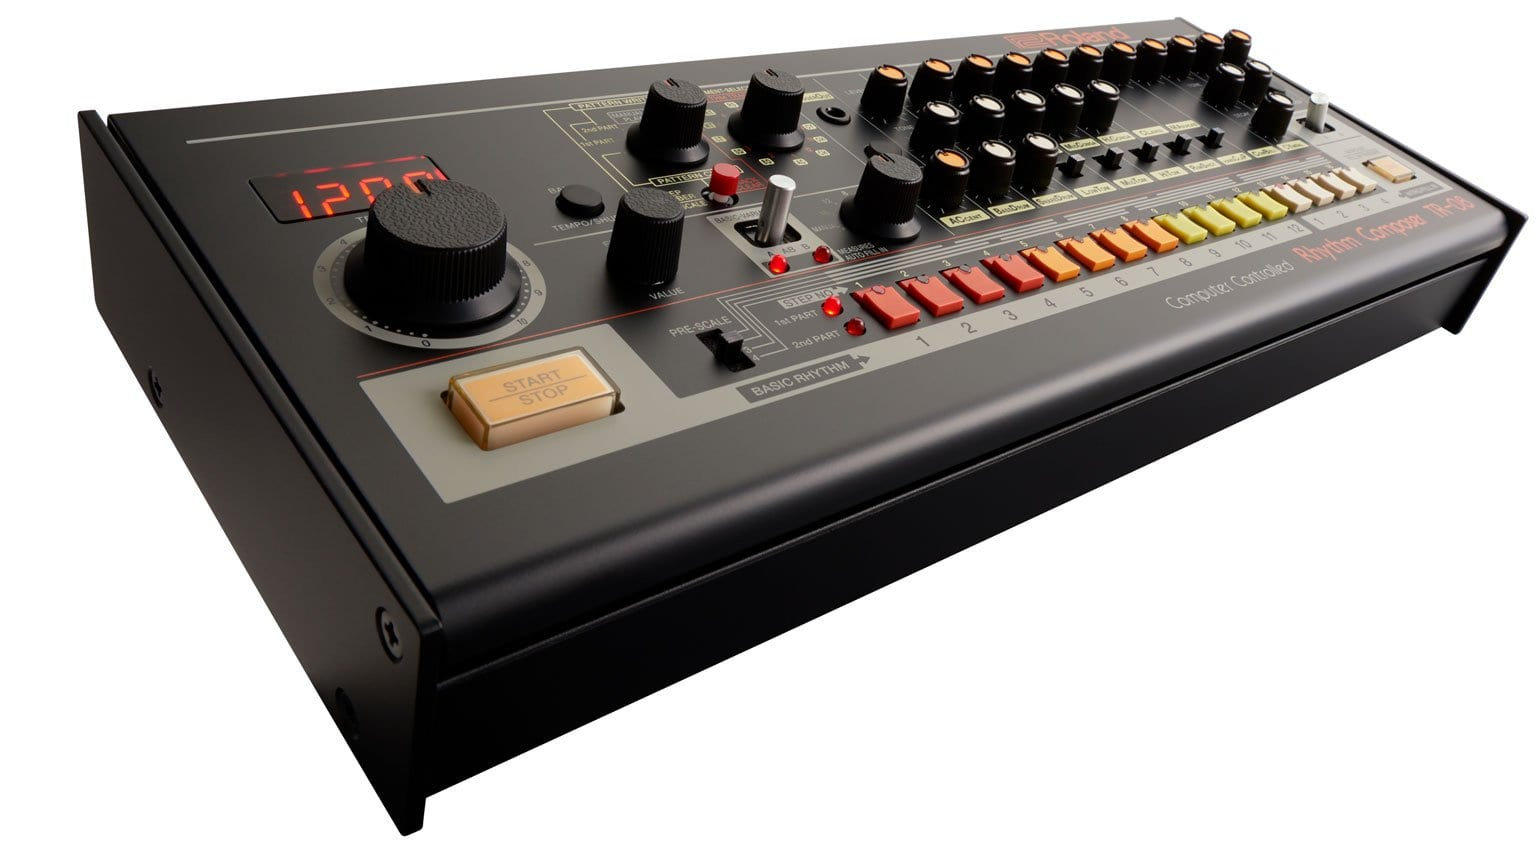 Roland TR-08 Rhythm Composer: the Boutique 808 we've been